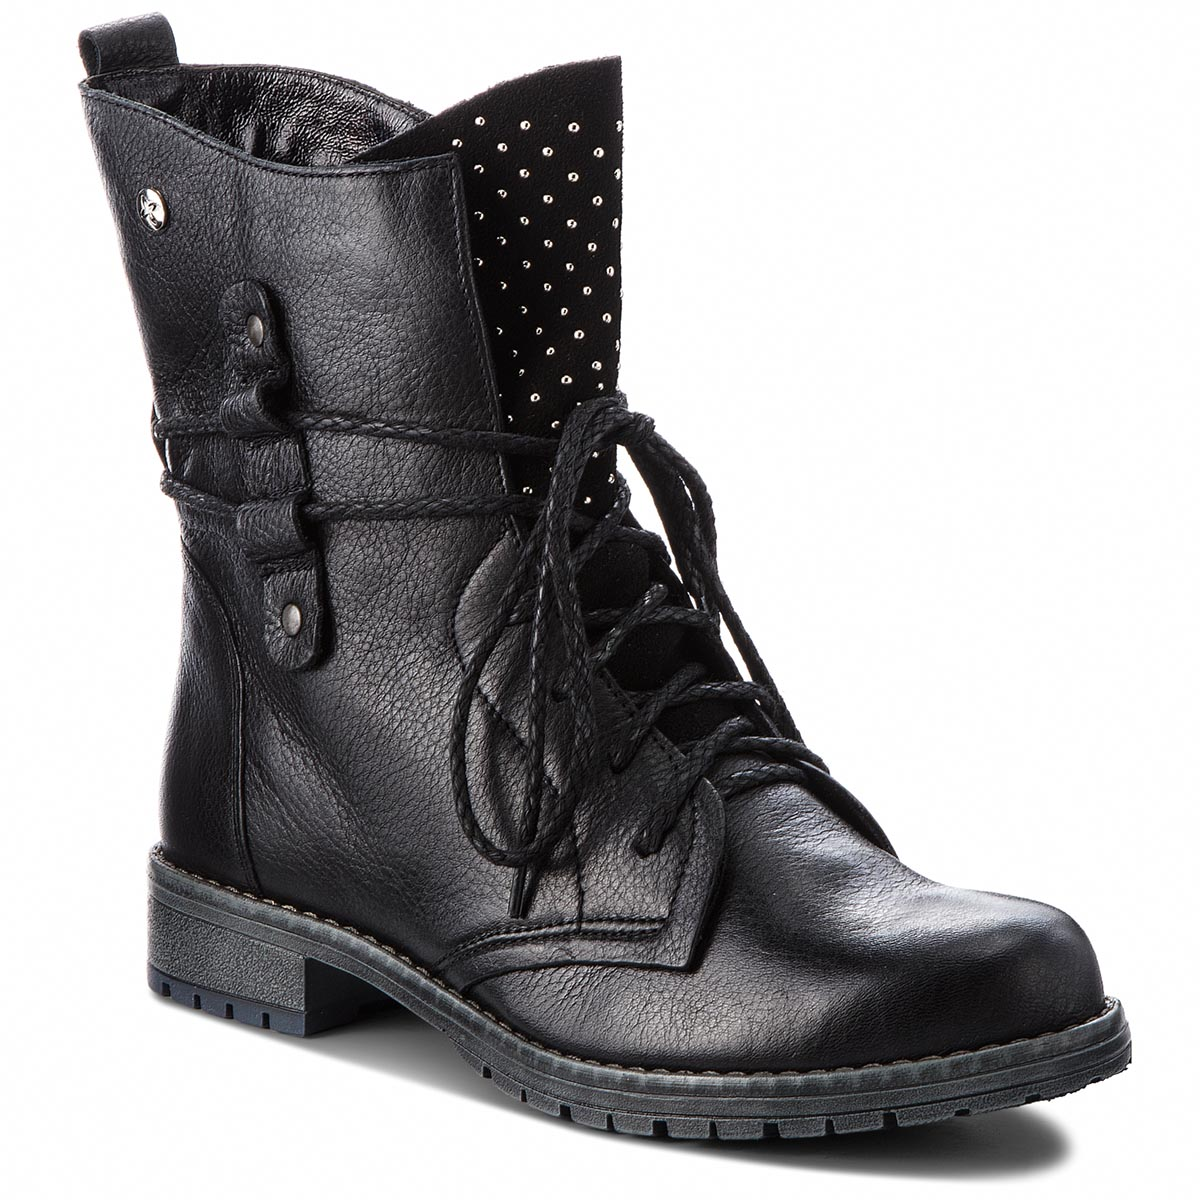 Bottines MACIEJKA - 03959-01/00-3 Noir